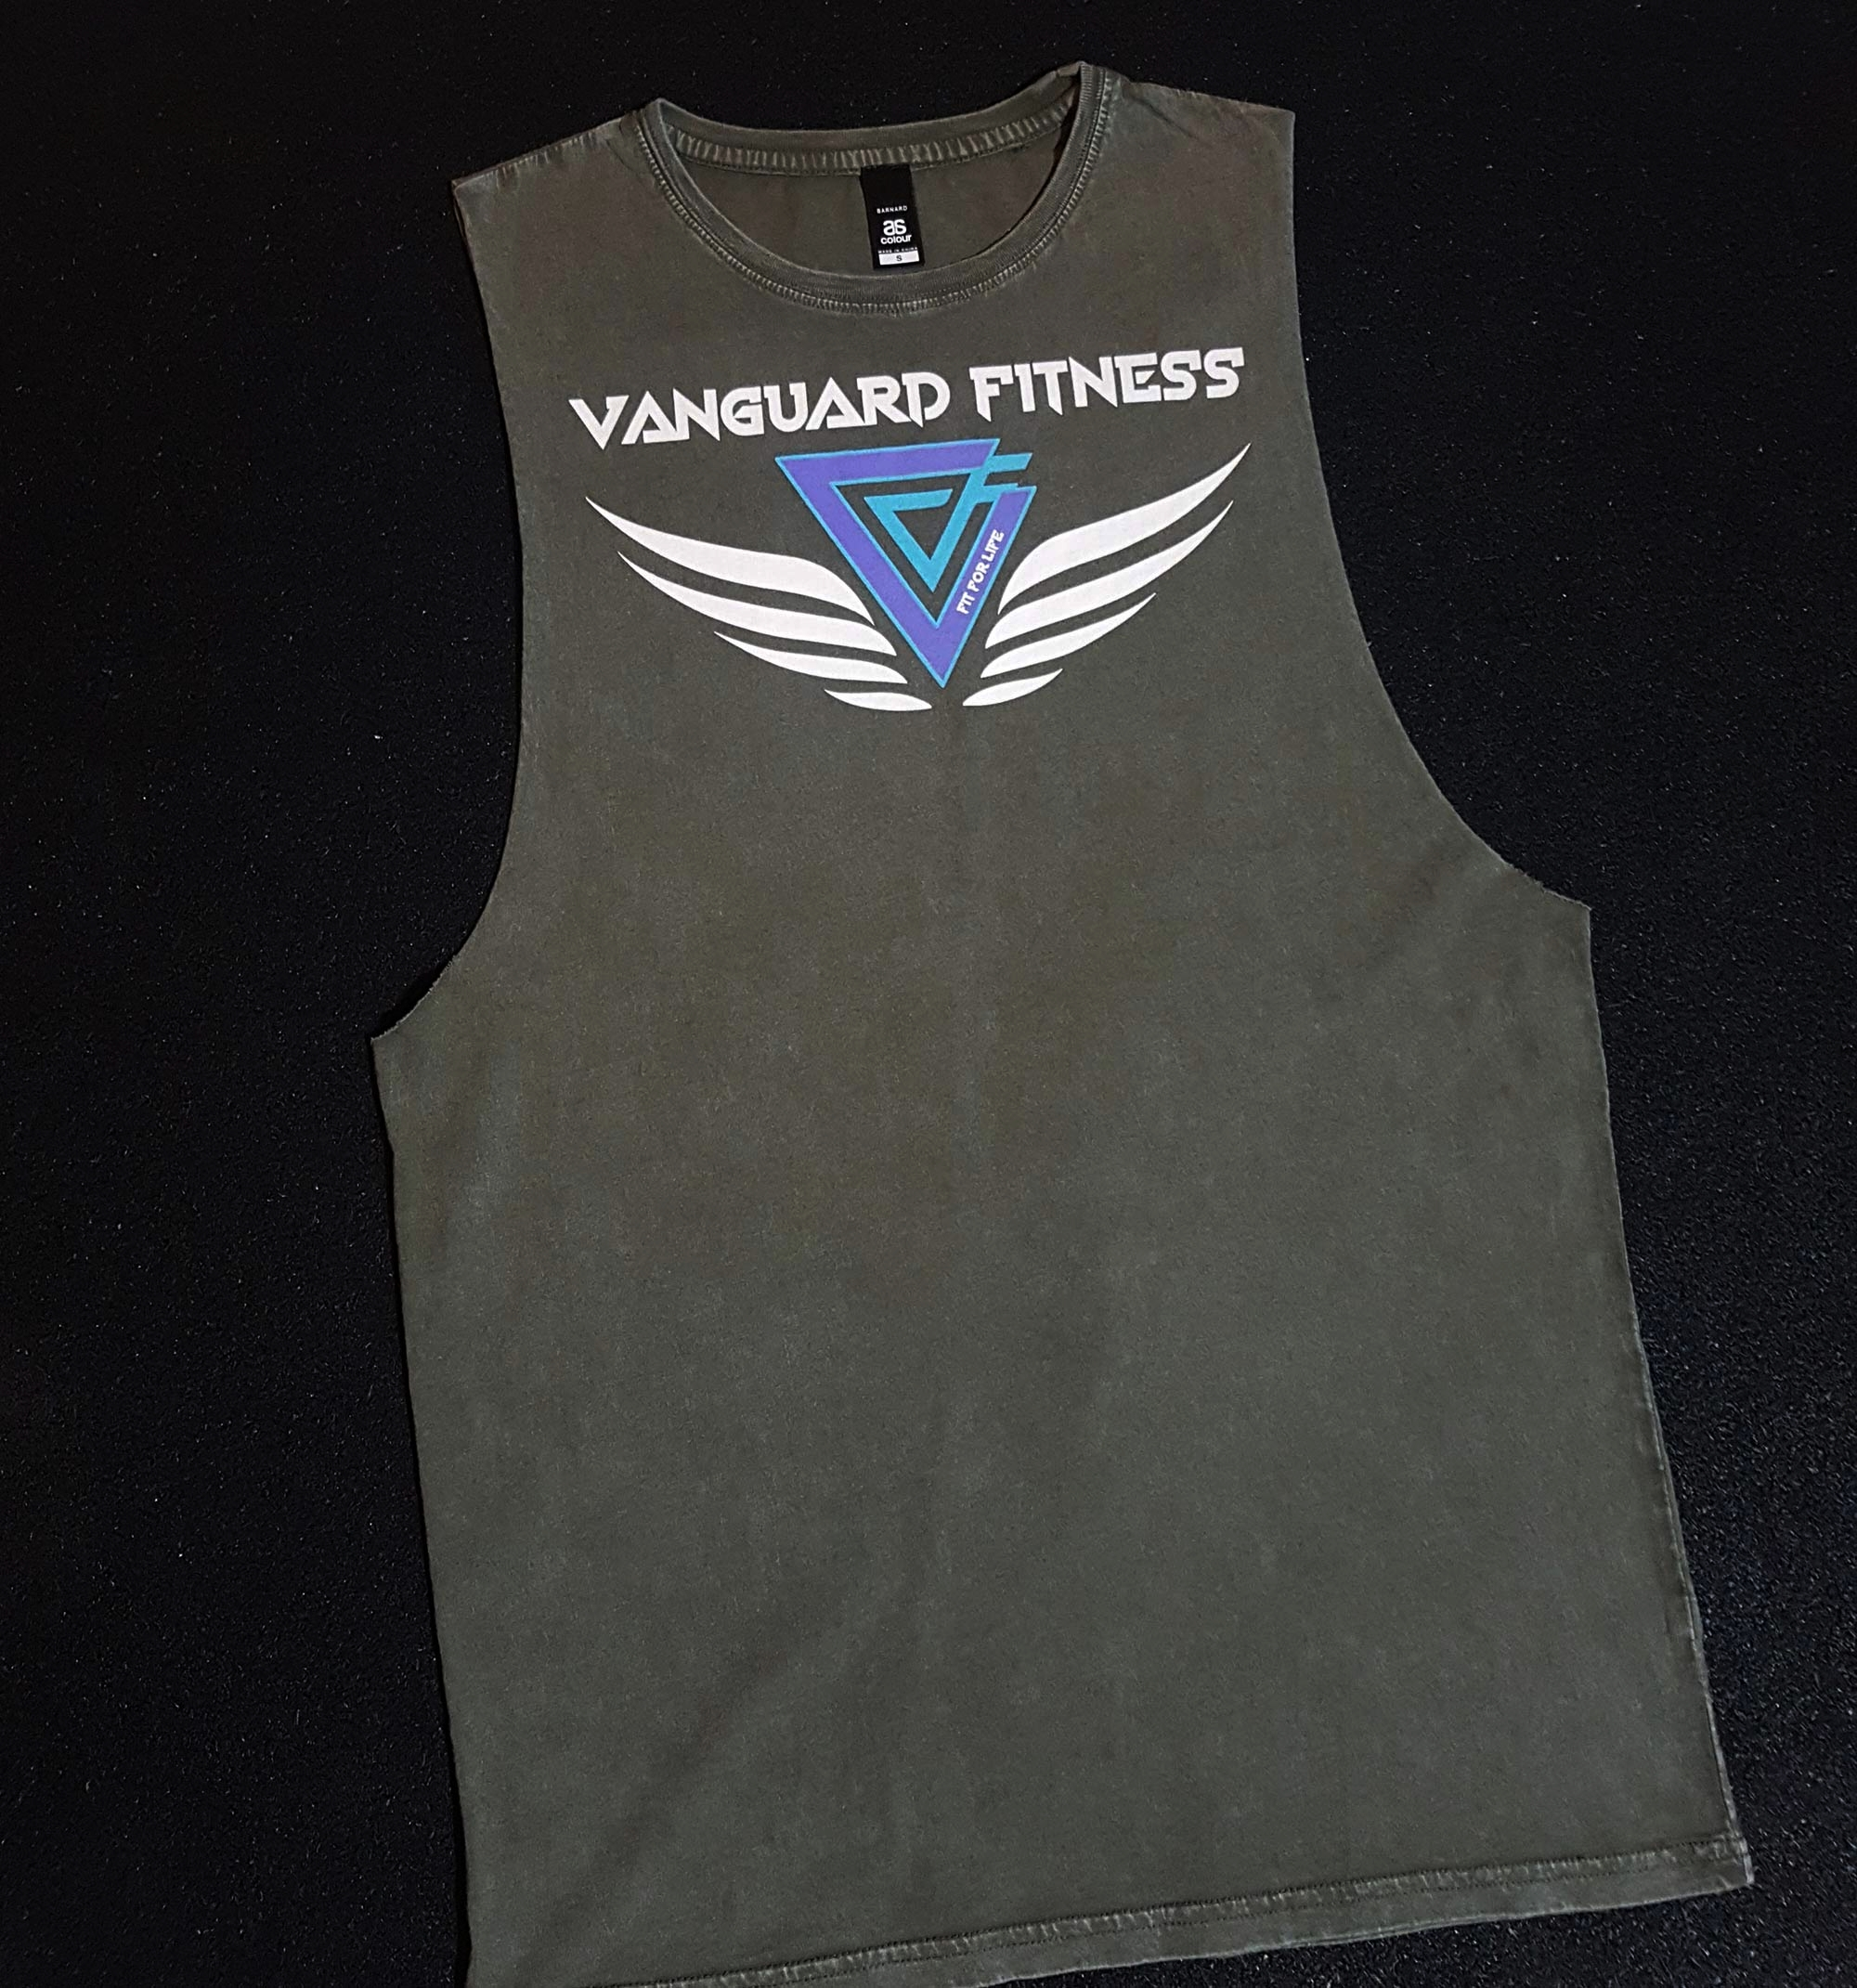 Training Top for Vanguard Fitness